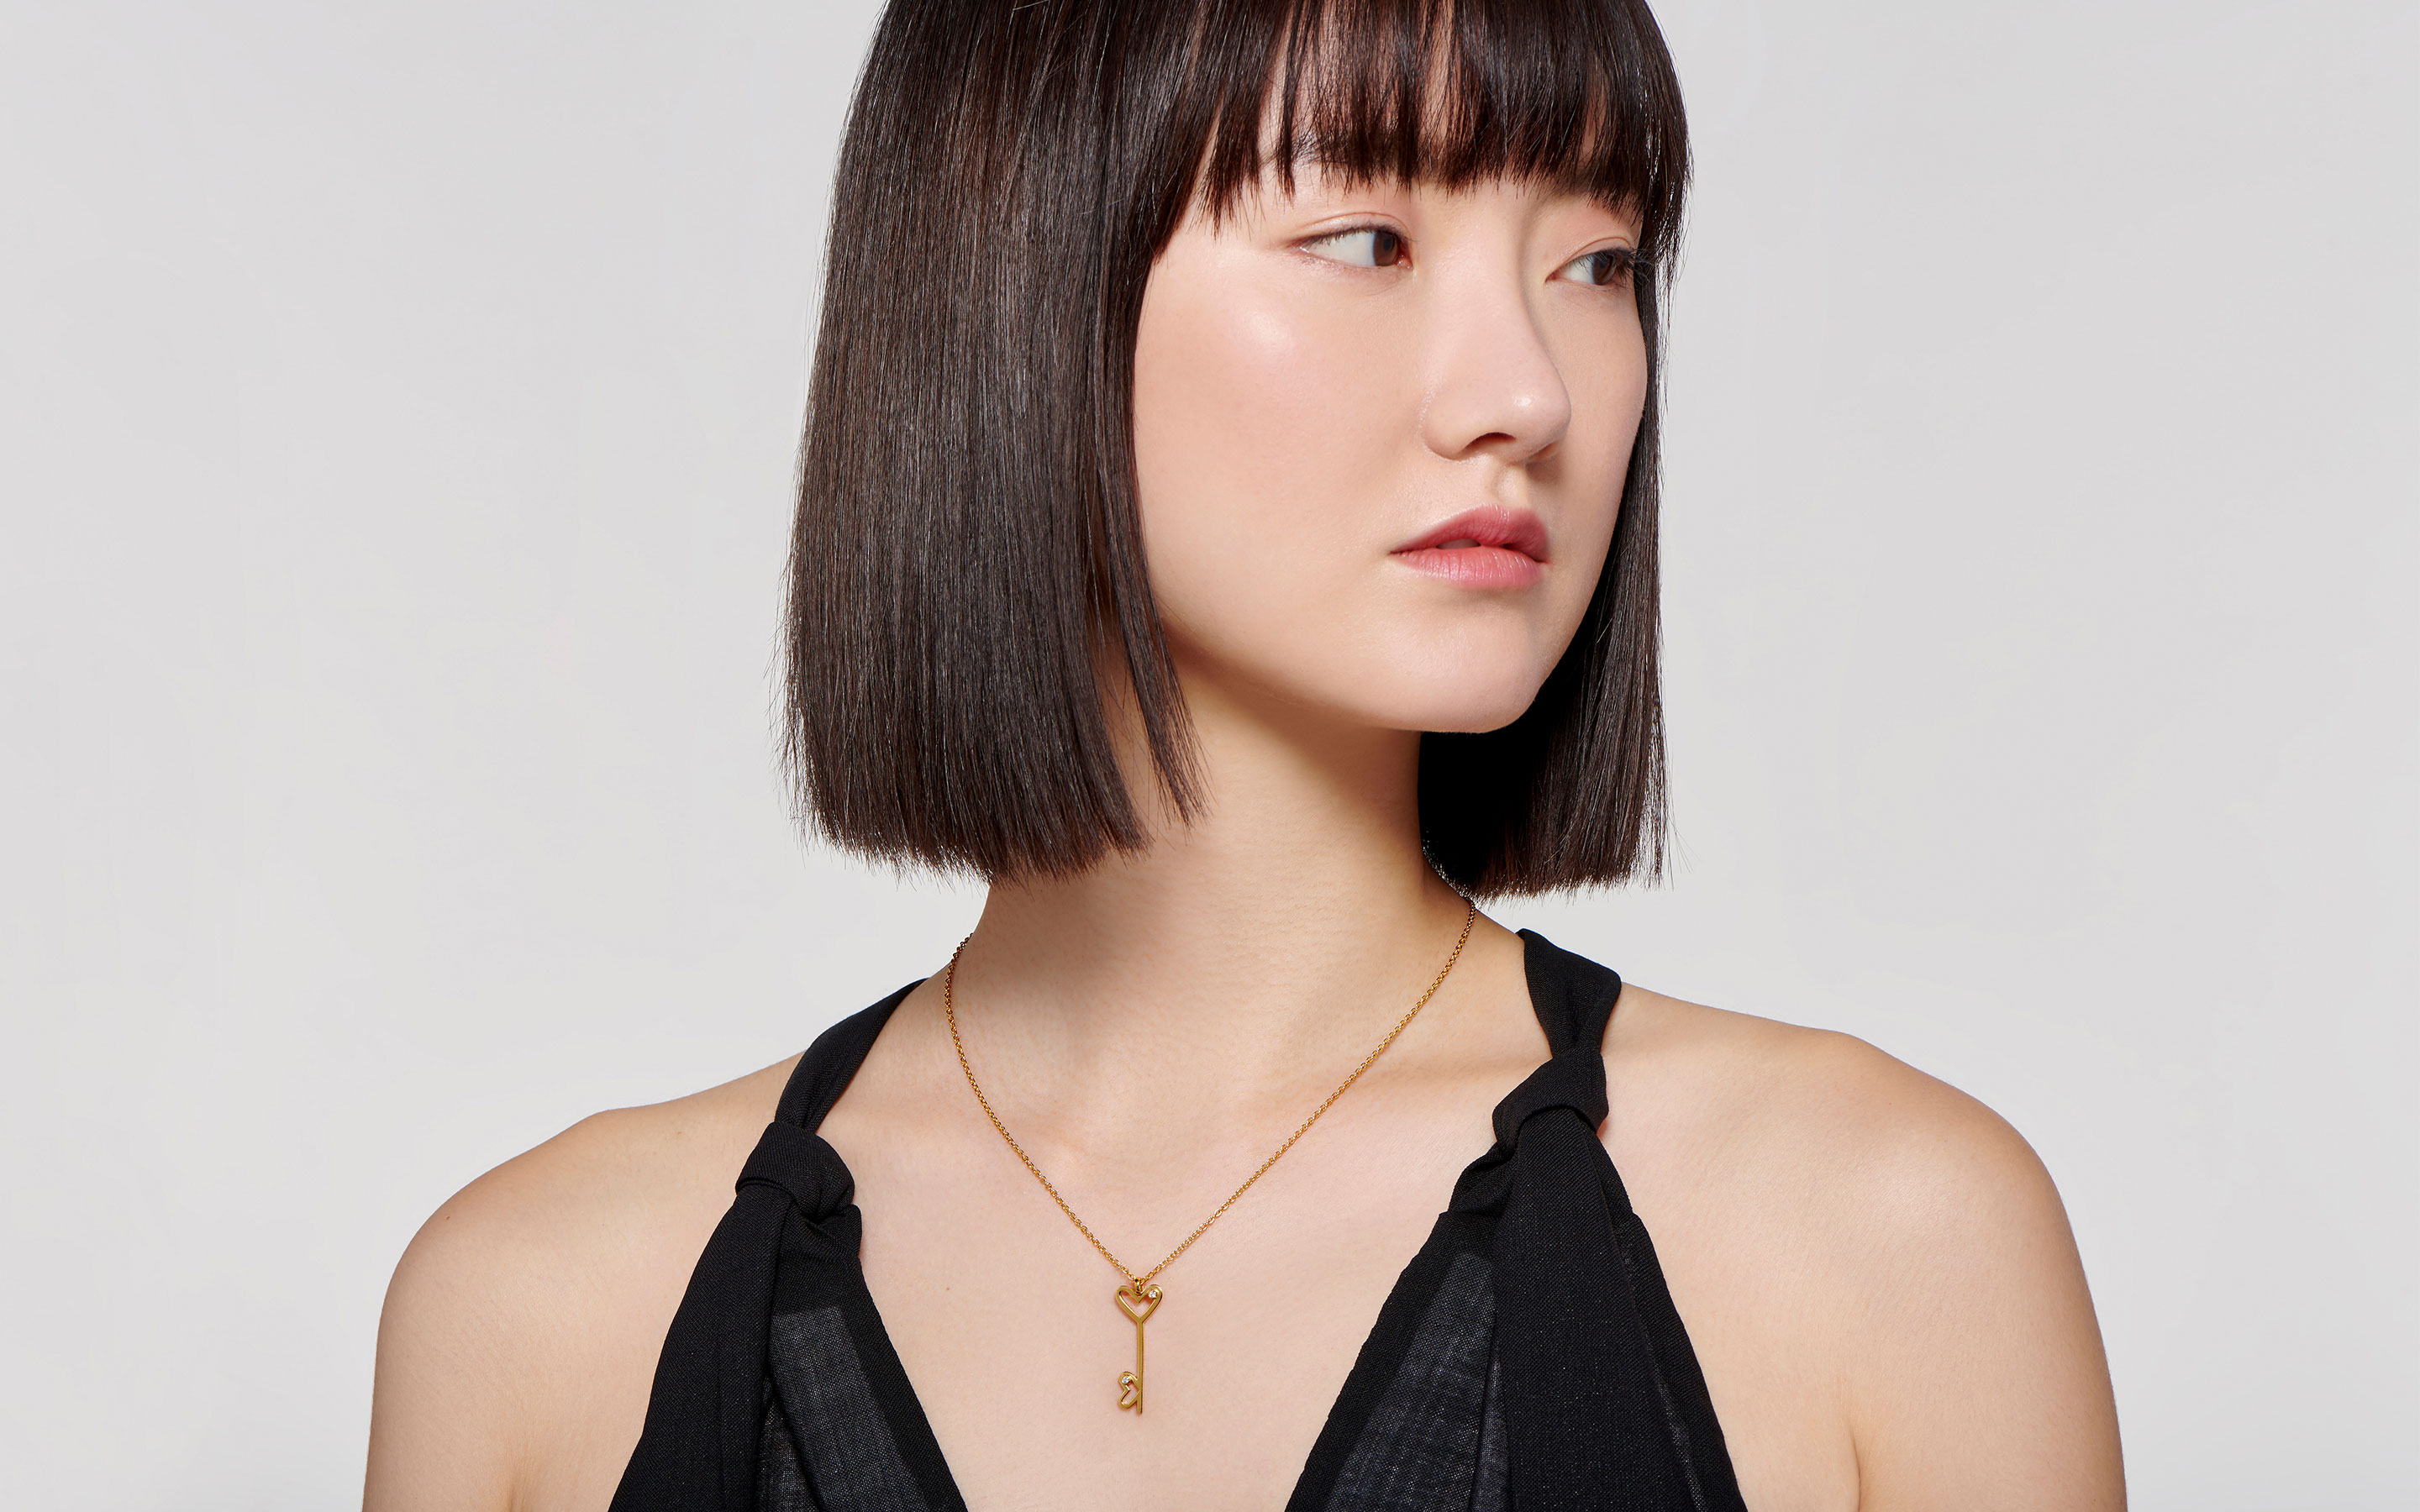 graceful East Asian woman modeling 22 karat gold necklace with double heart key pendant